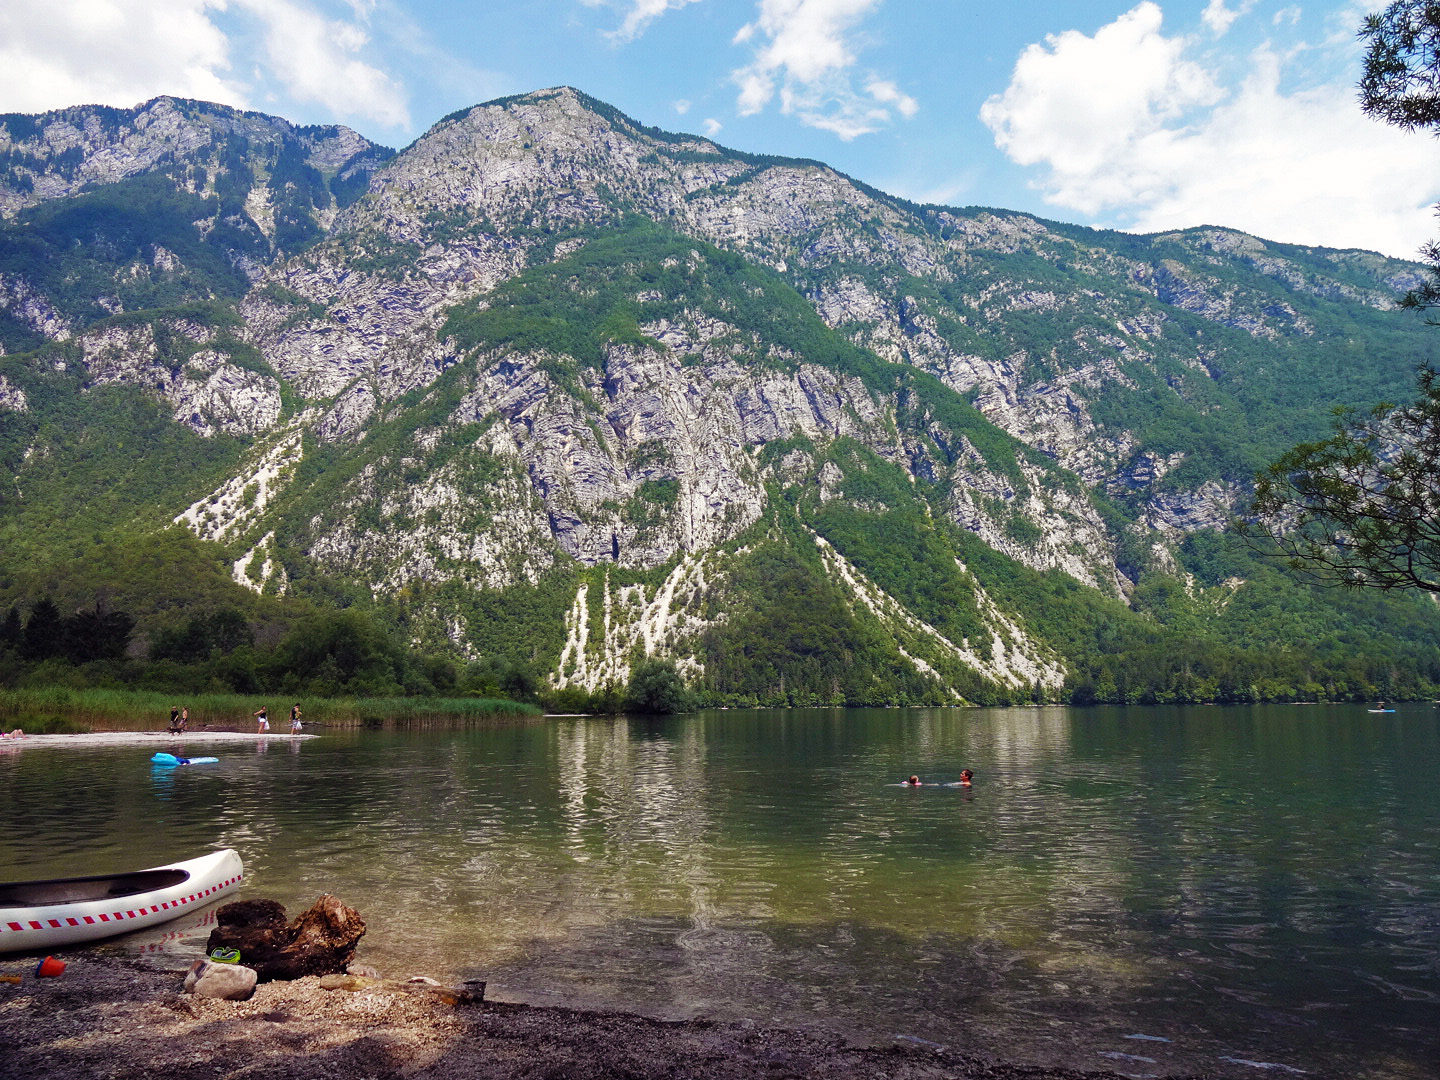 Lake Bohinj is postcard material...!